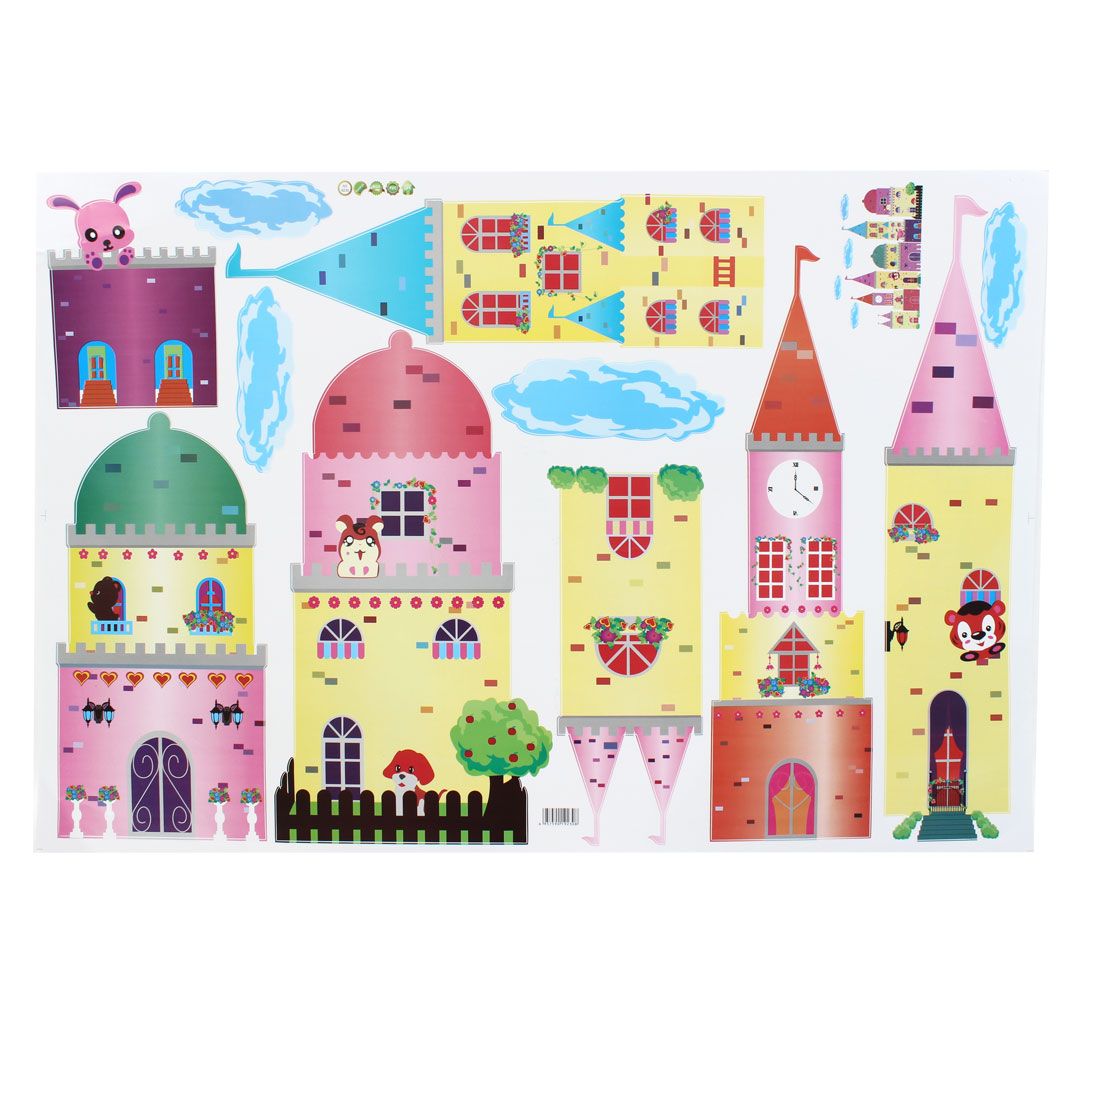 Room Cartoon Castle Pattern Wall Sticker Art Mural Wallpaper Decor